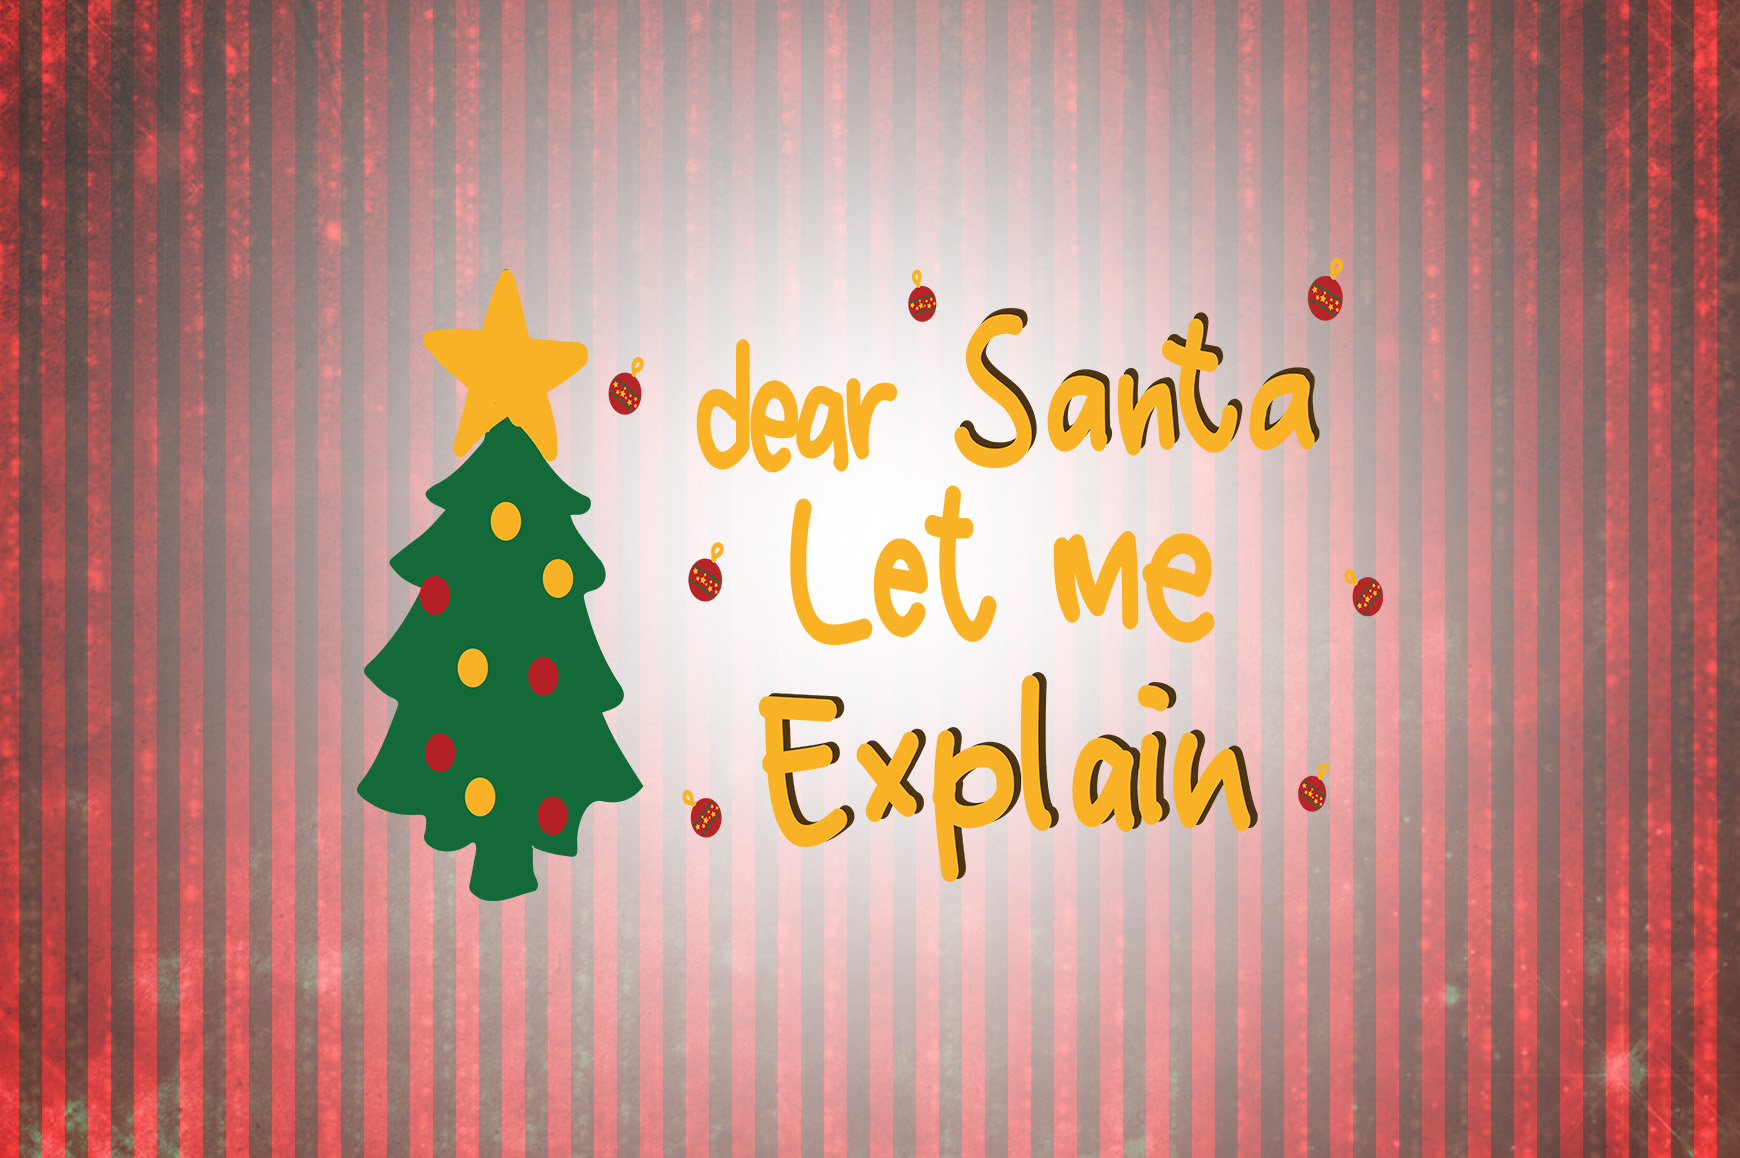 Download Free Dear Santa Let Me Explain Quotes Graphic By Wienscollection for Cricut Explore, Silhouette and other cutting machines.